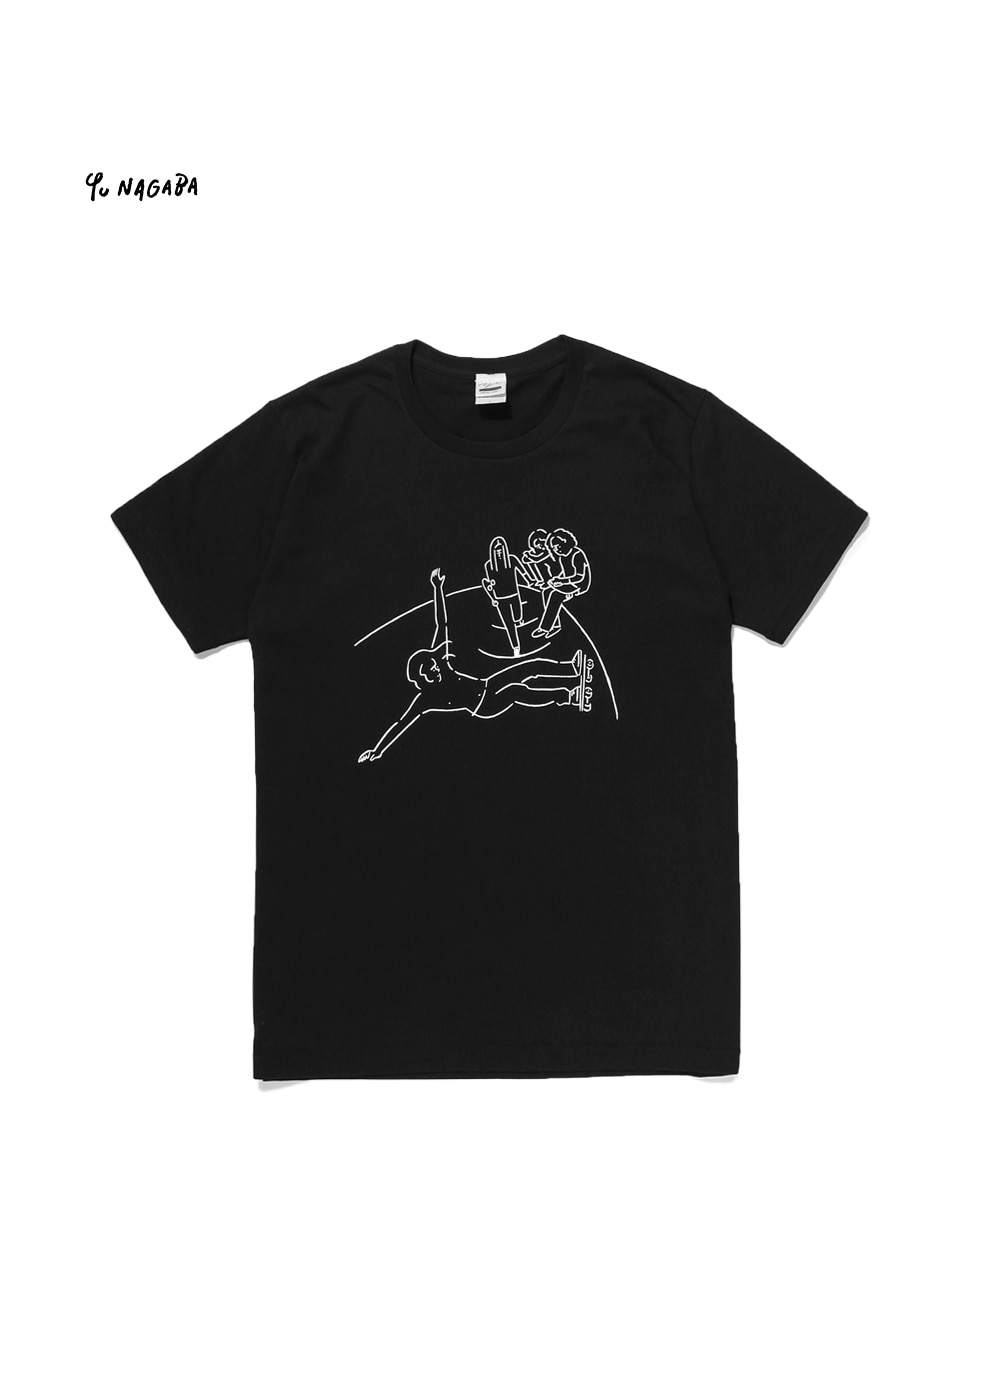 YU NAGABA - DOGTOWN T-SHIRT black